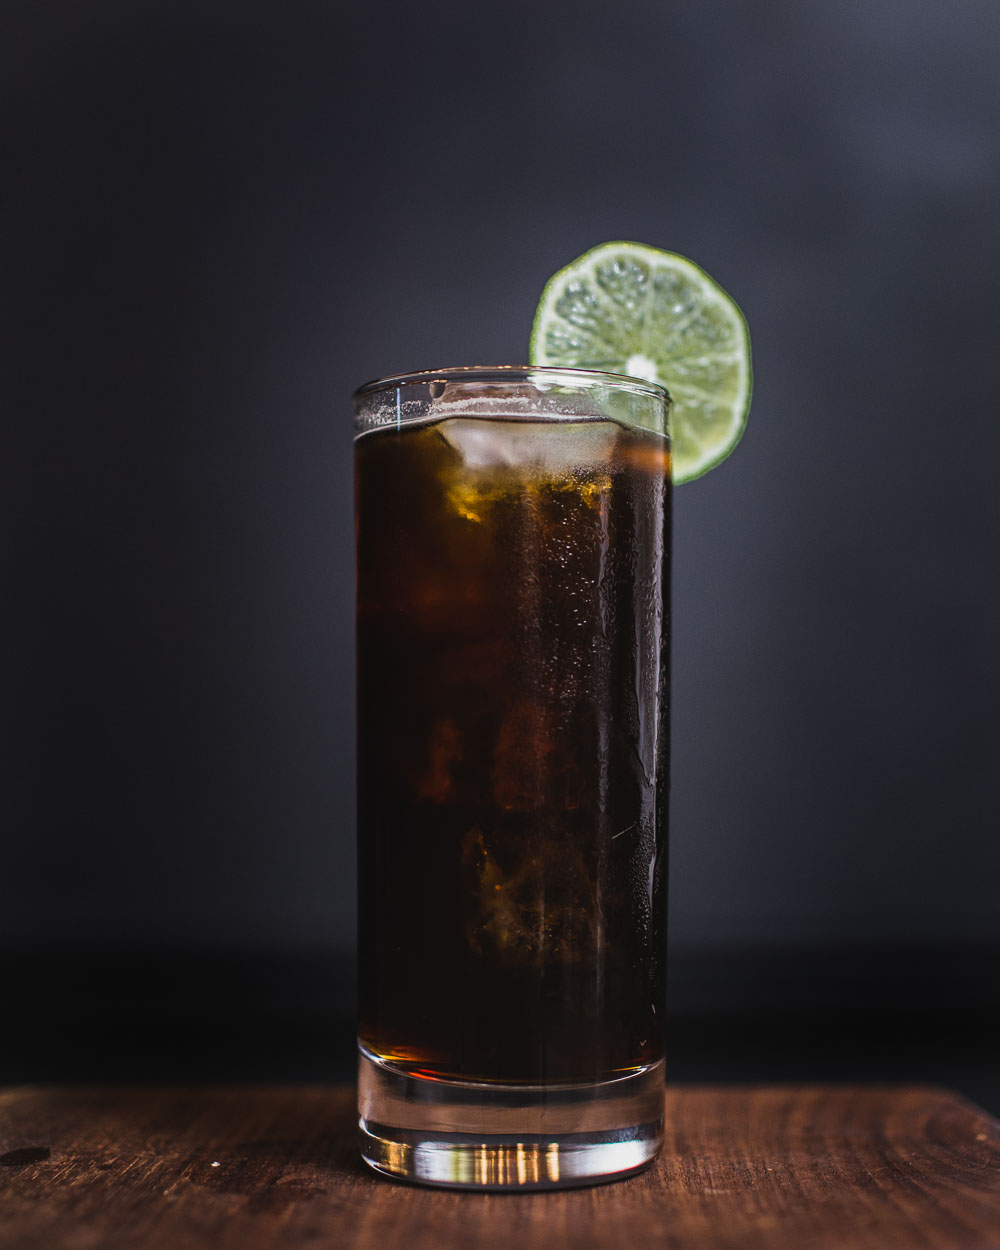 Cocktails are a natural extension of what we've been doing with coffee since we opened. -